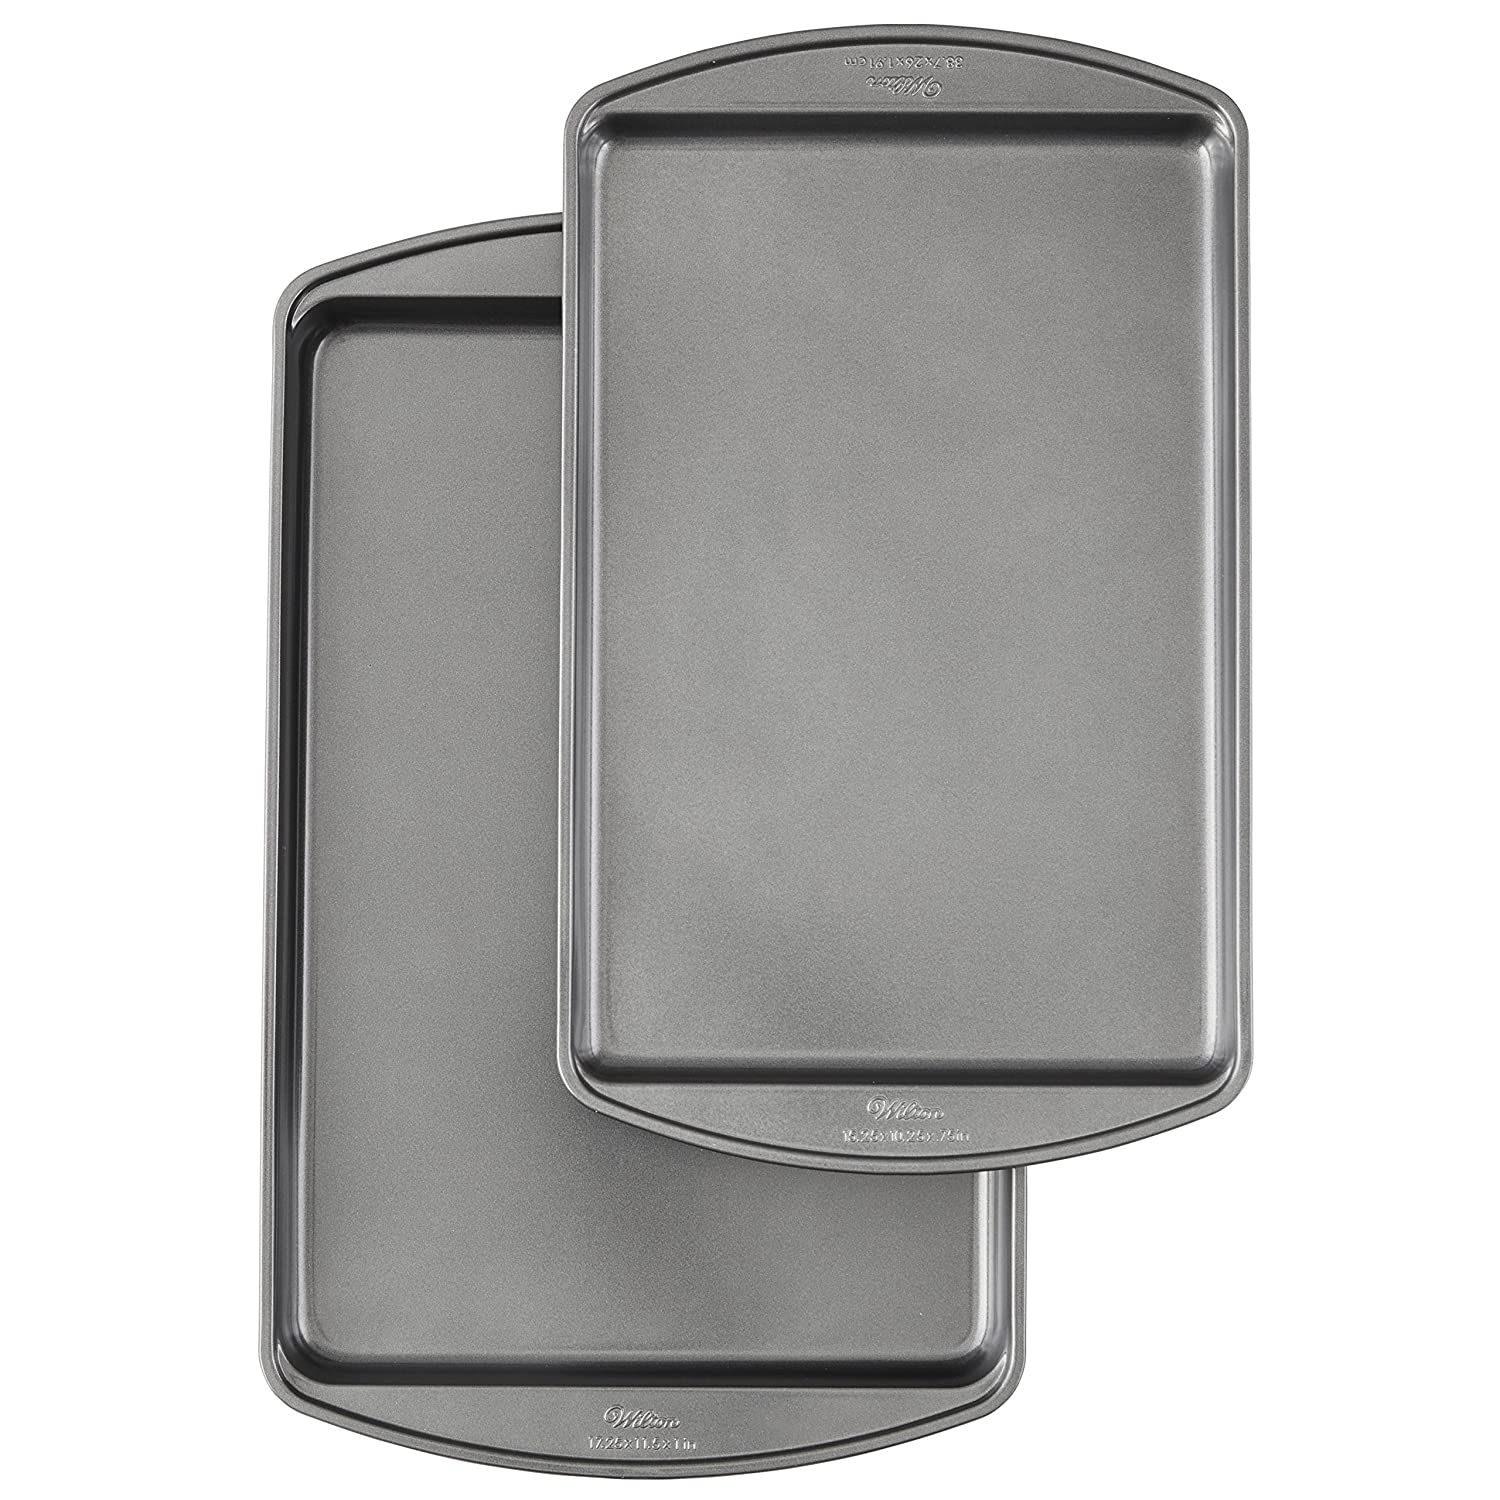 Wilton Perfect Results Premium Non-Stick Bakeware Cookie Baking Sheets Set, 2-Piece 2105-6900